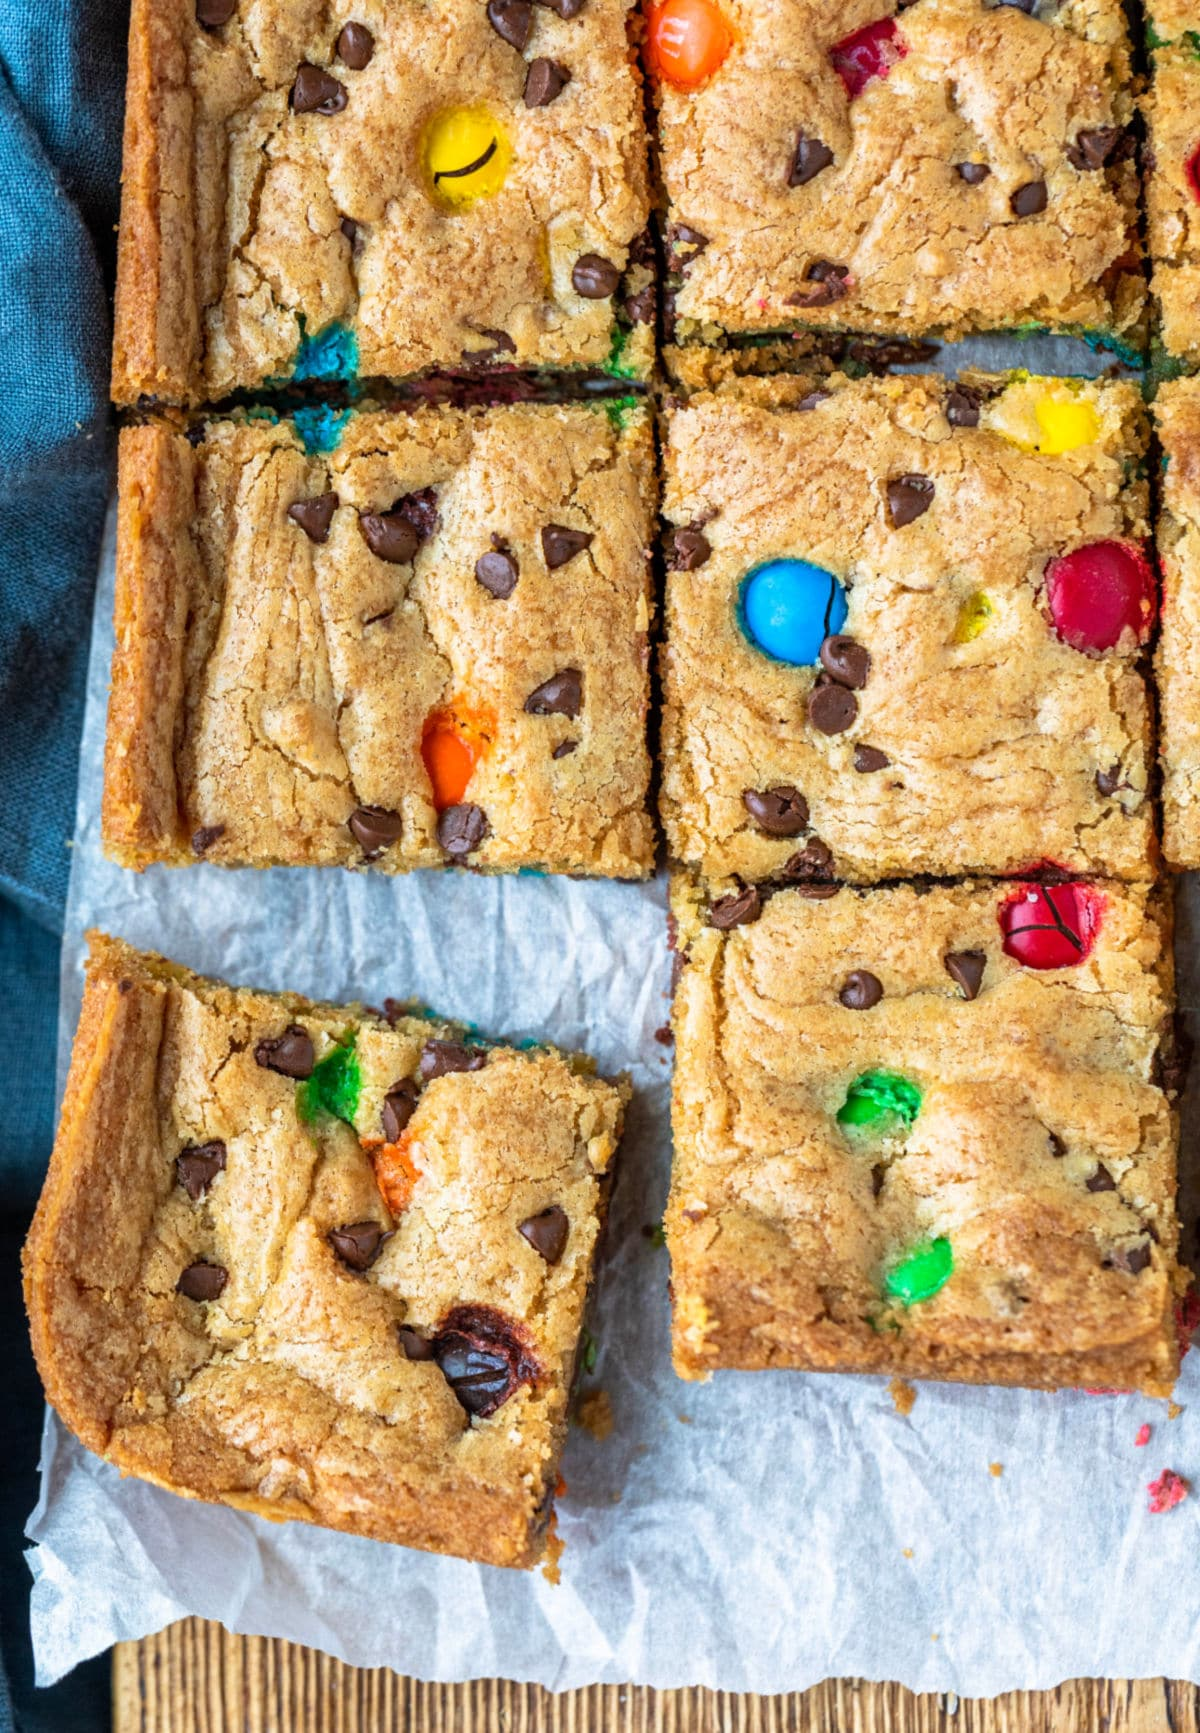 M&M cookie bars cut into pieces